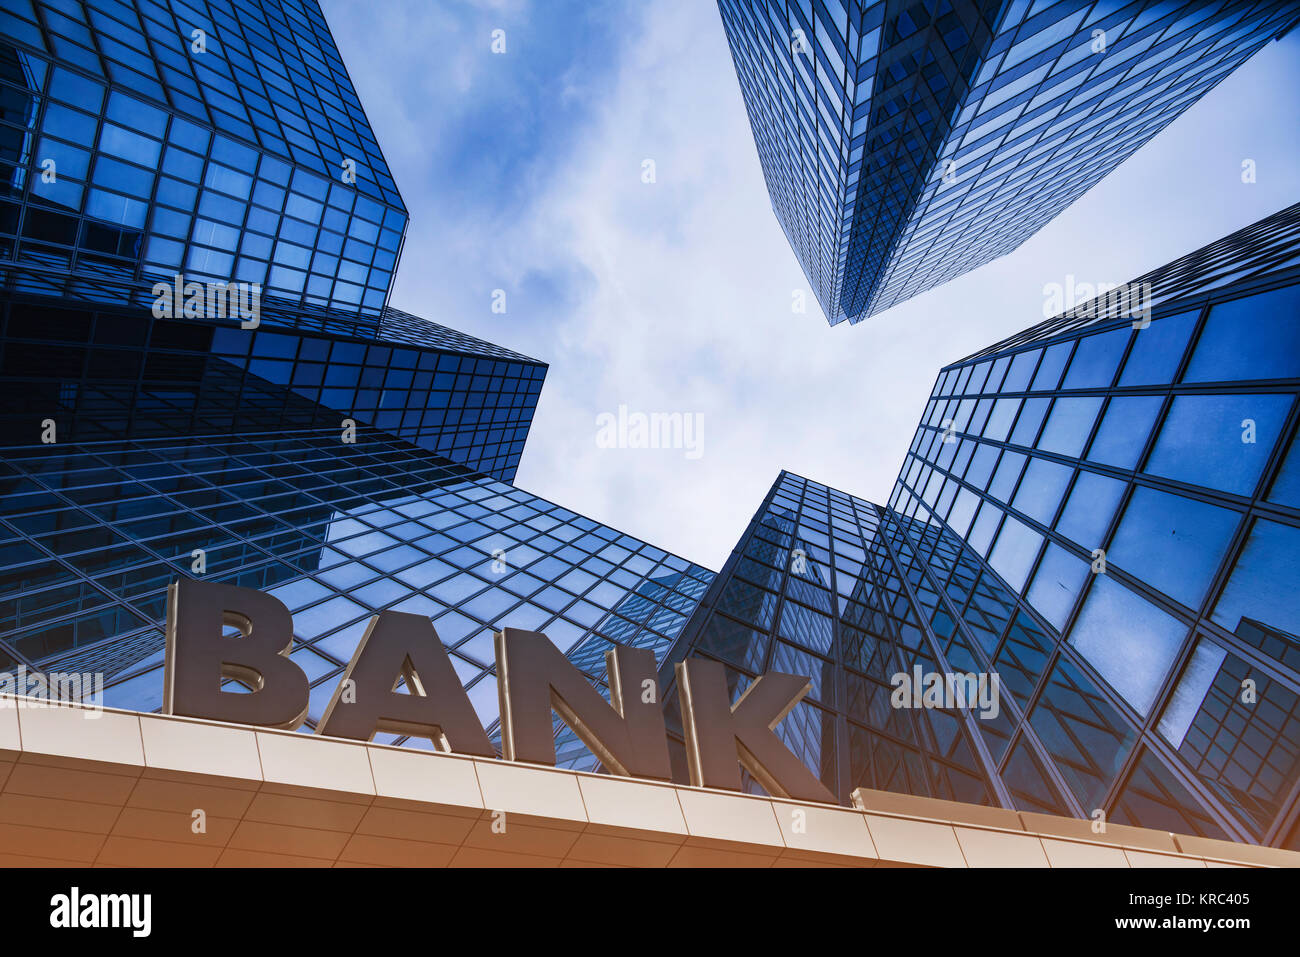 Bank building in a business area - Stock Image